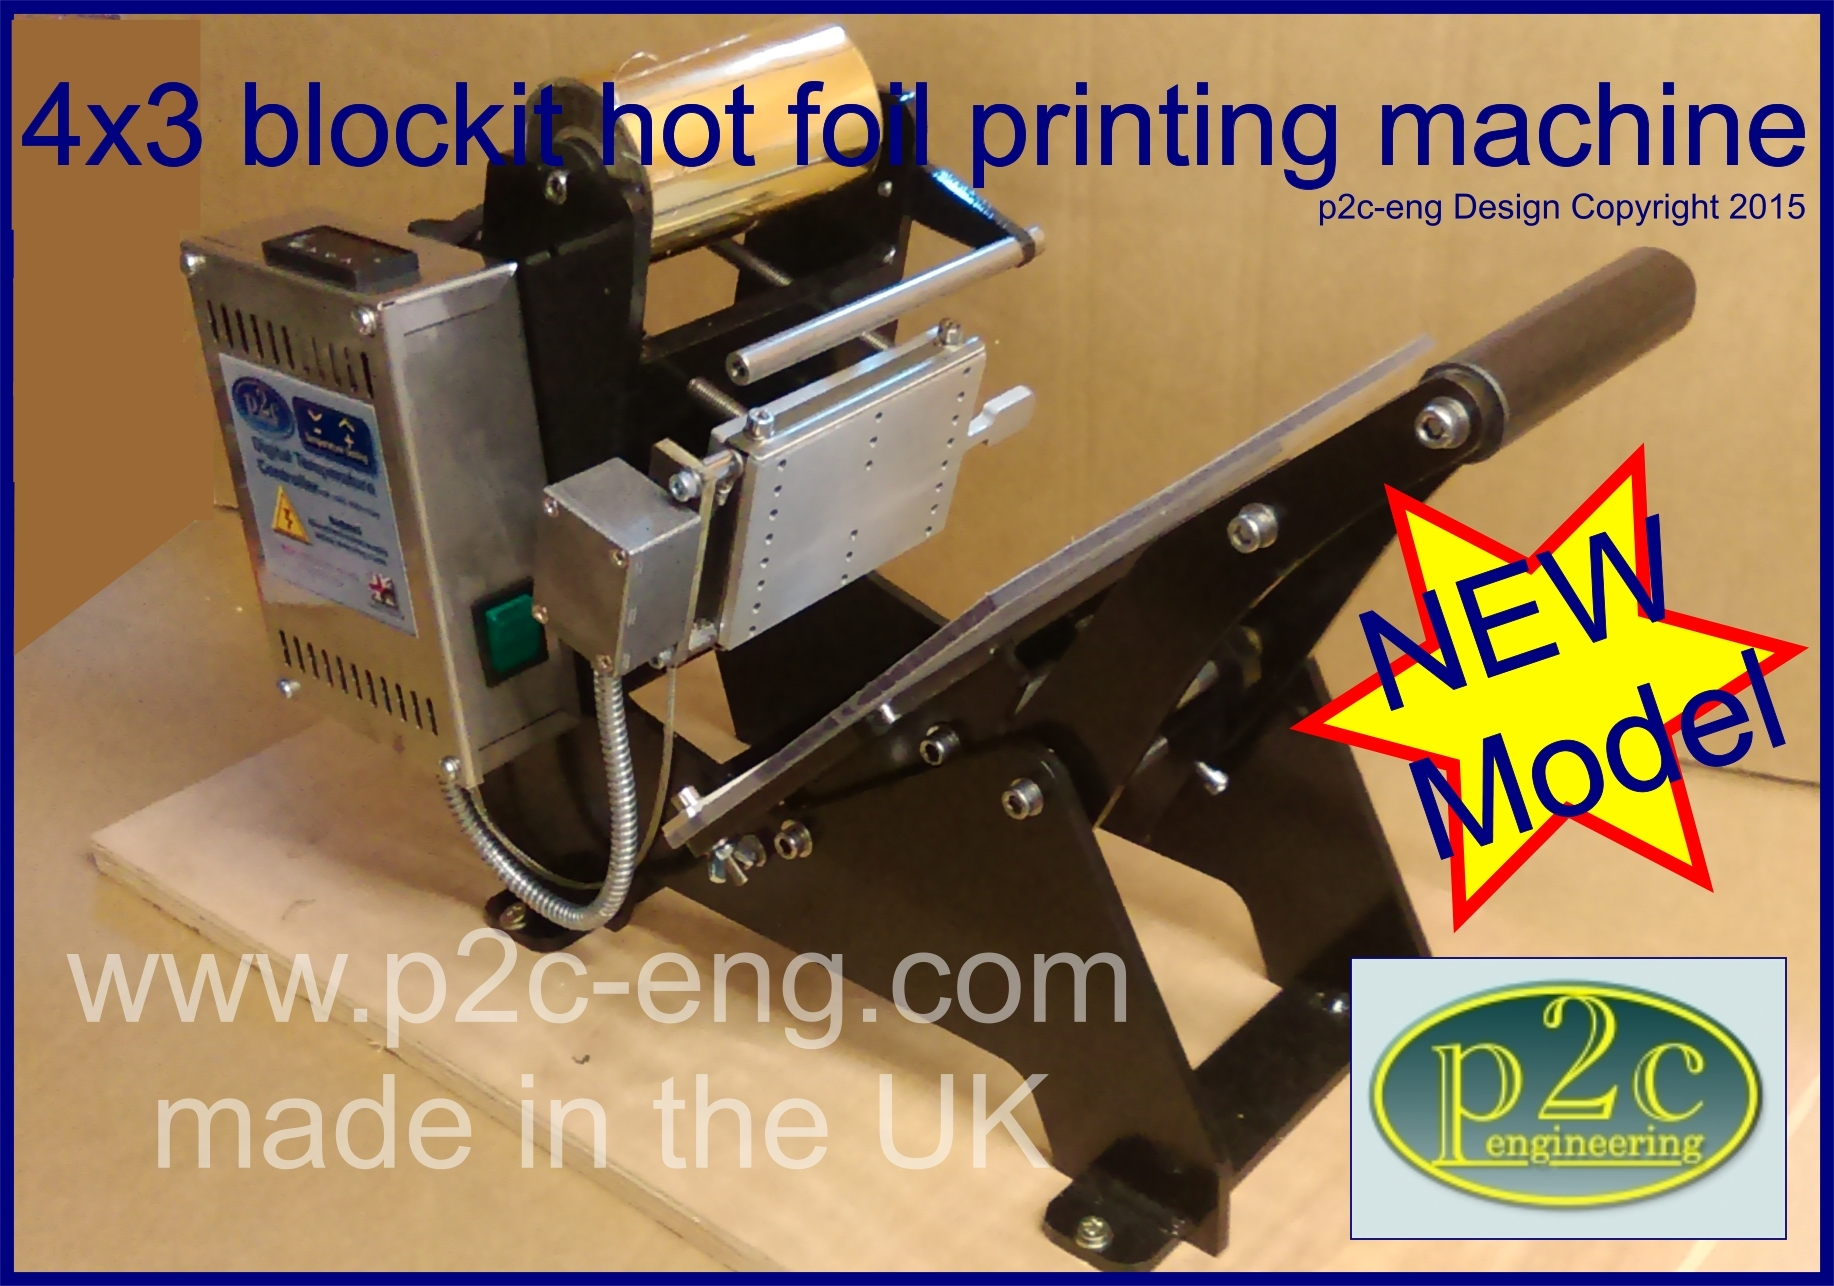 hot_foil_printing_machine_New_4x3_model